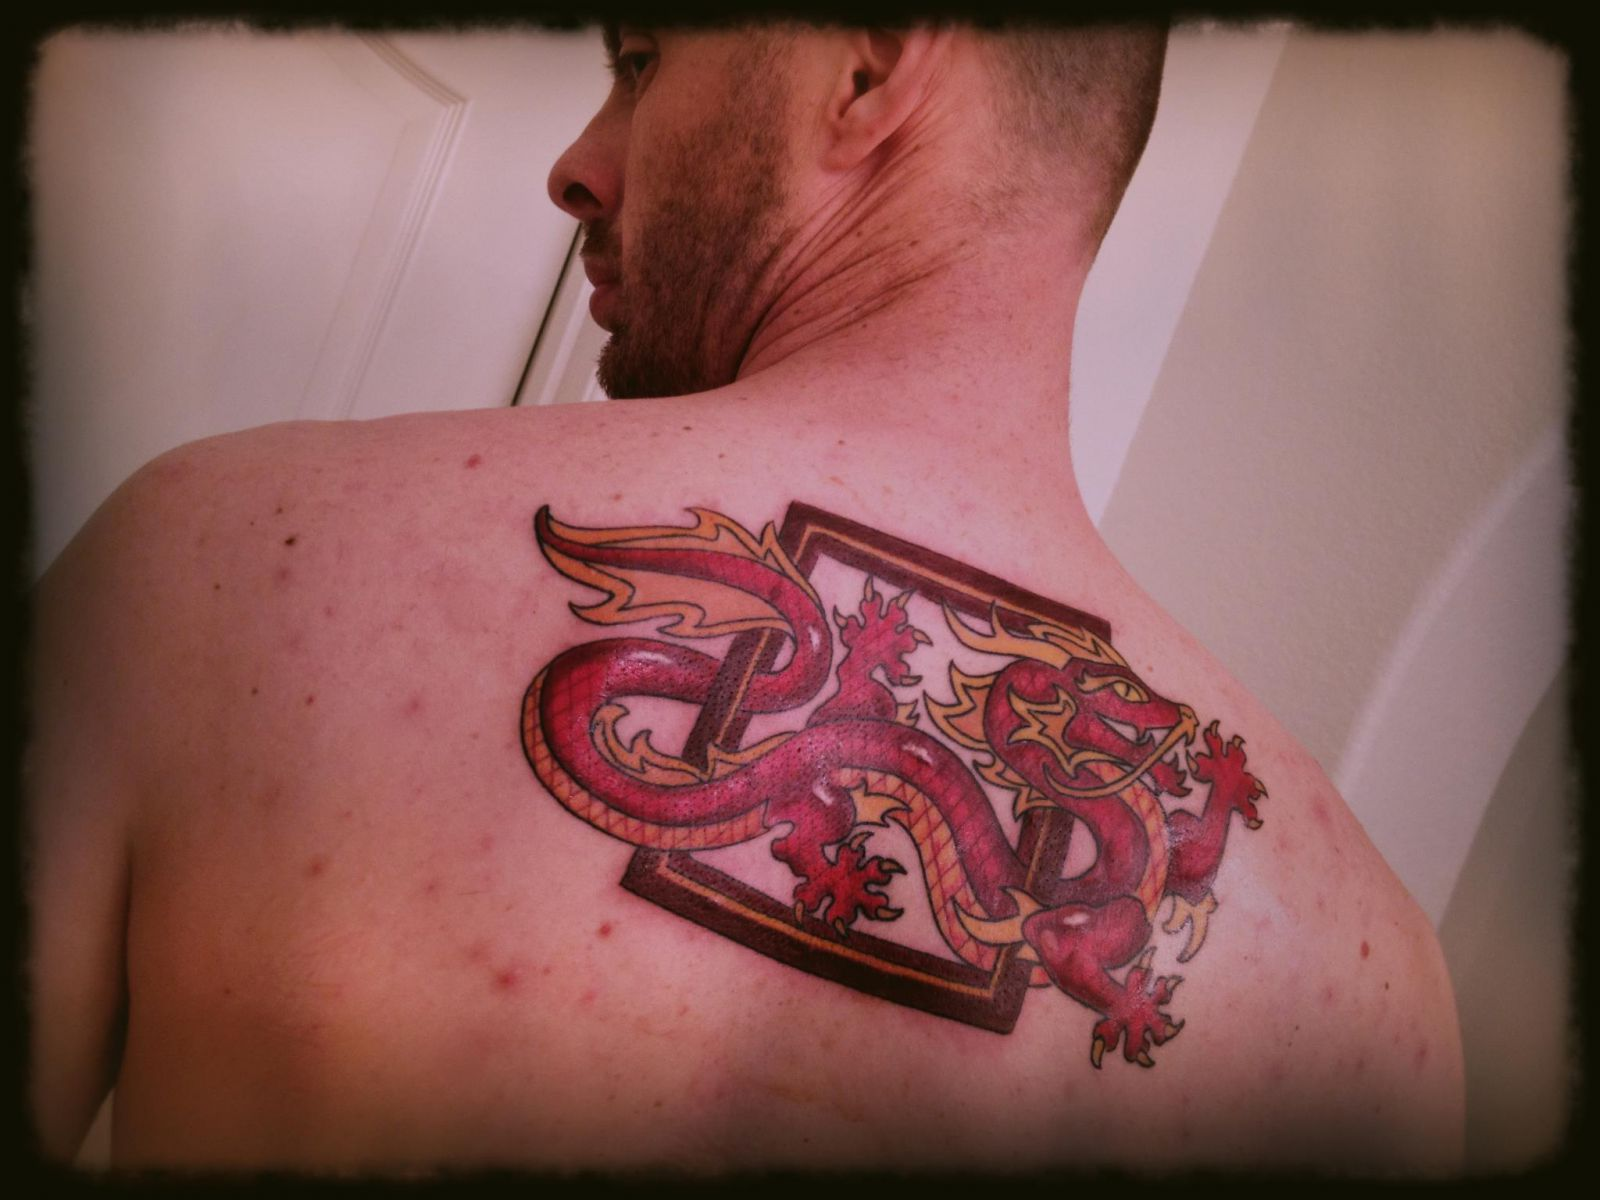 Jason's Wheel of Time tattoo